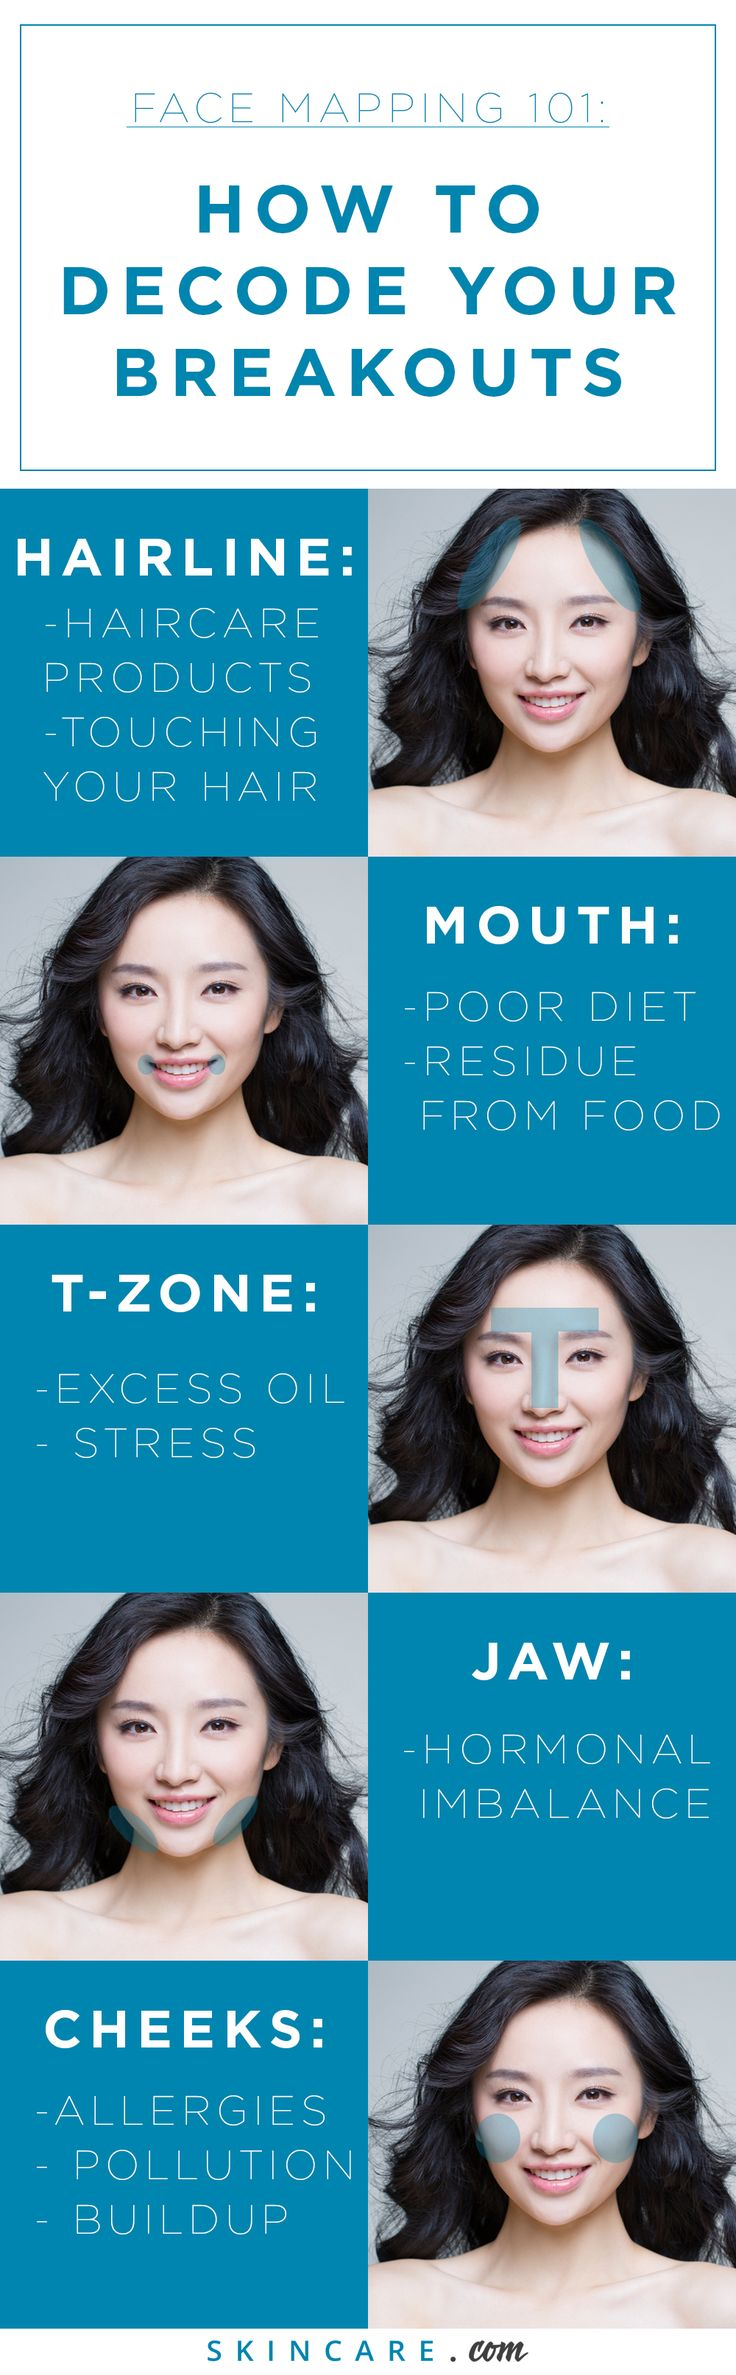 Whether you have acne-prone skin or experience a pimple here and there, it can be hard to get rid of a blemish— especially if you don't know why you are breaking out. From allergies to pollution to poor diet and hormones, the reason your pores are clogged on your cheeks, T-Zone, jaw, and mouth may not be from pore clogging dirt and debris. We share a face mapping chart that tells you how to find out what is causing your latest breakout & how you can get rid of it. | Powered by L'Oréal